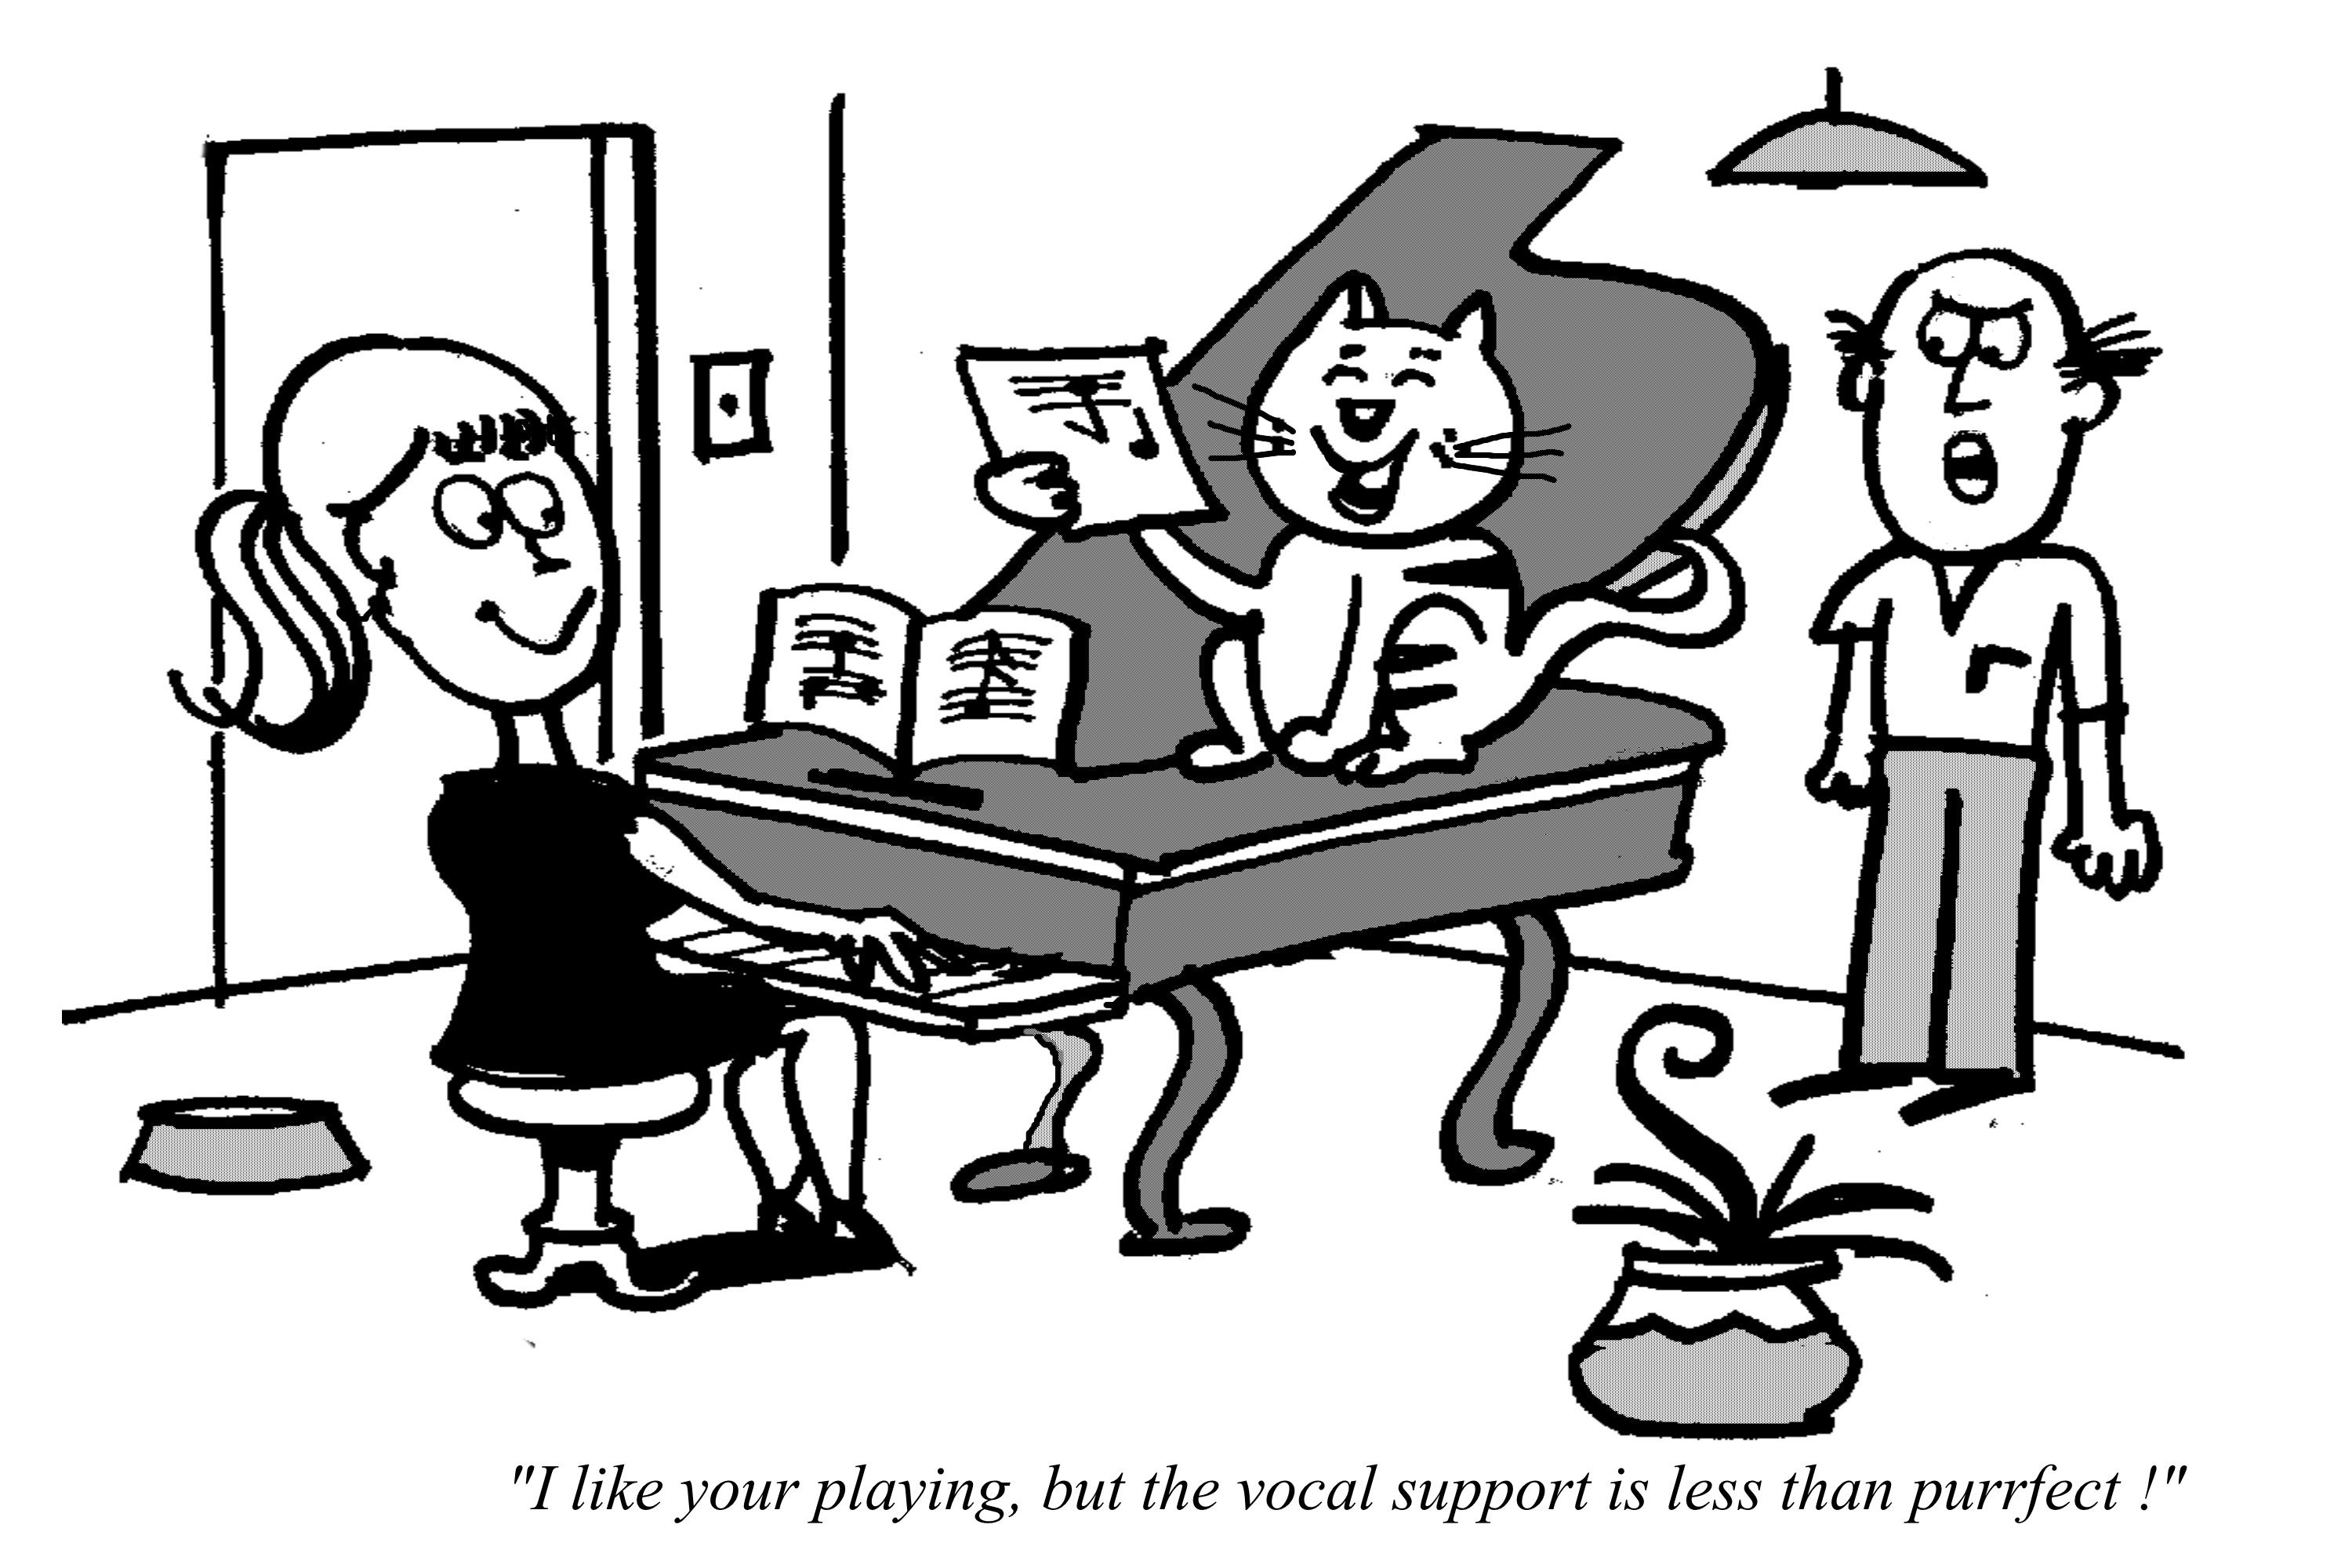 Cartoon of happy cat singing along with woman playing piano